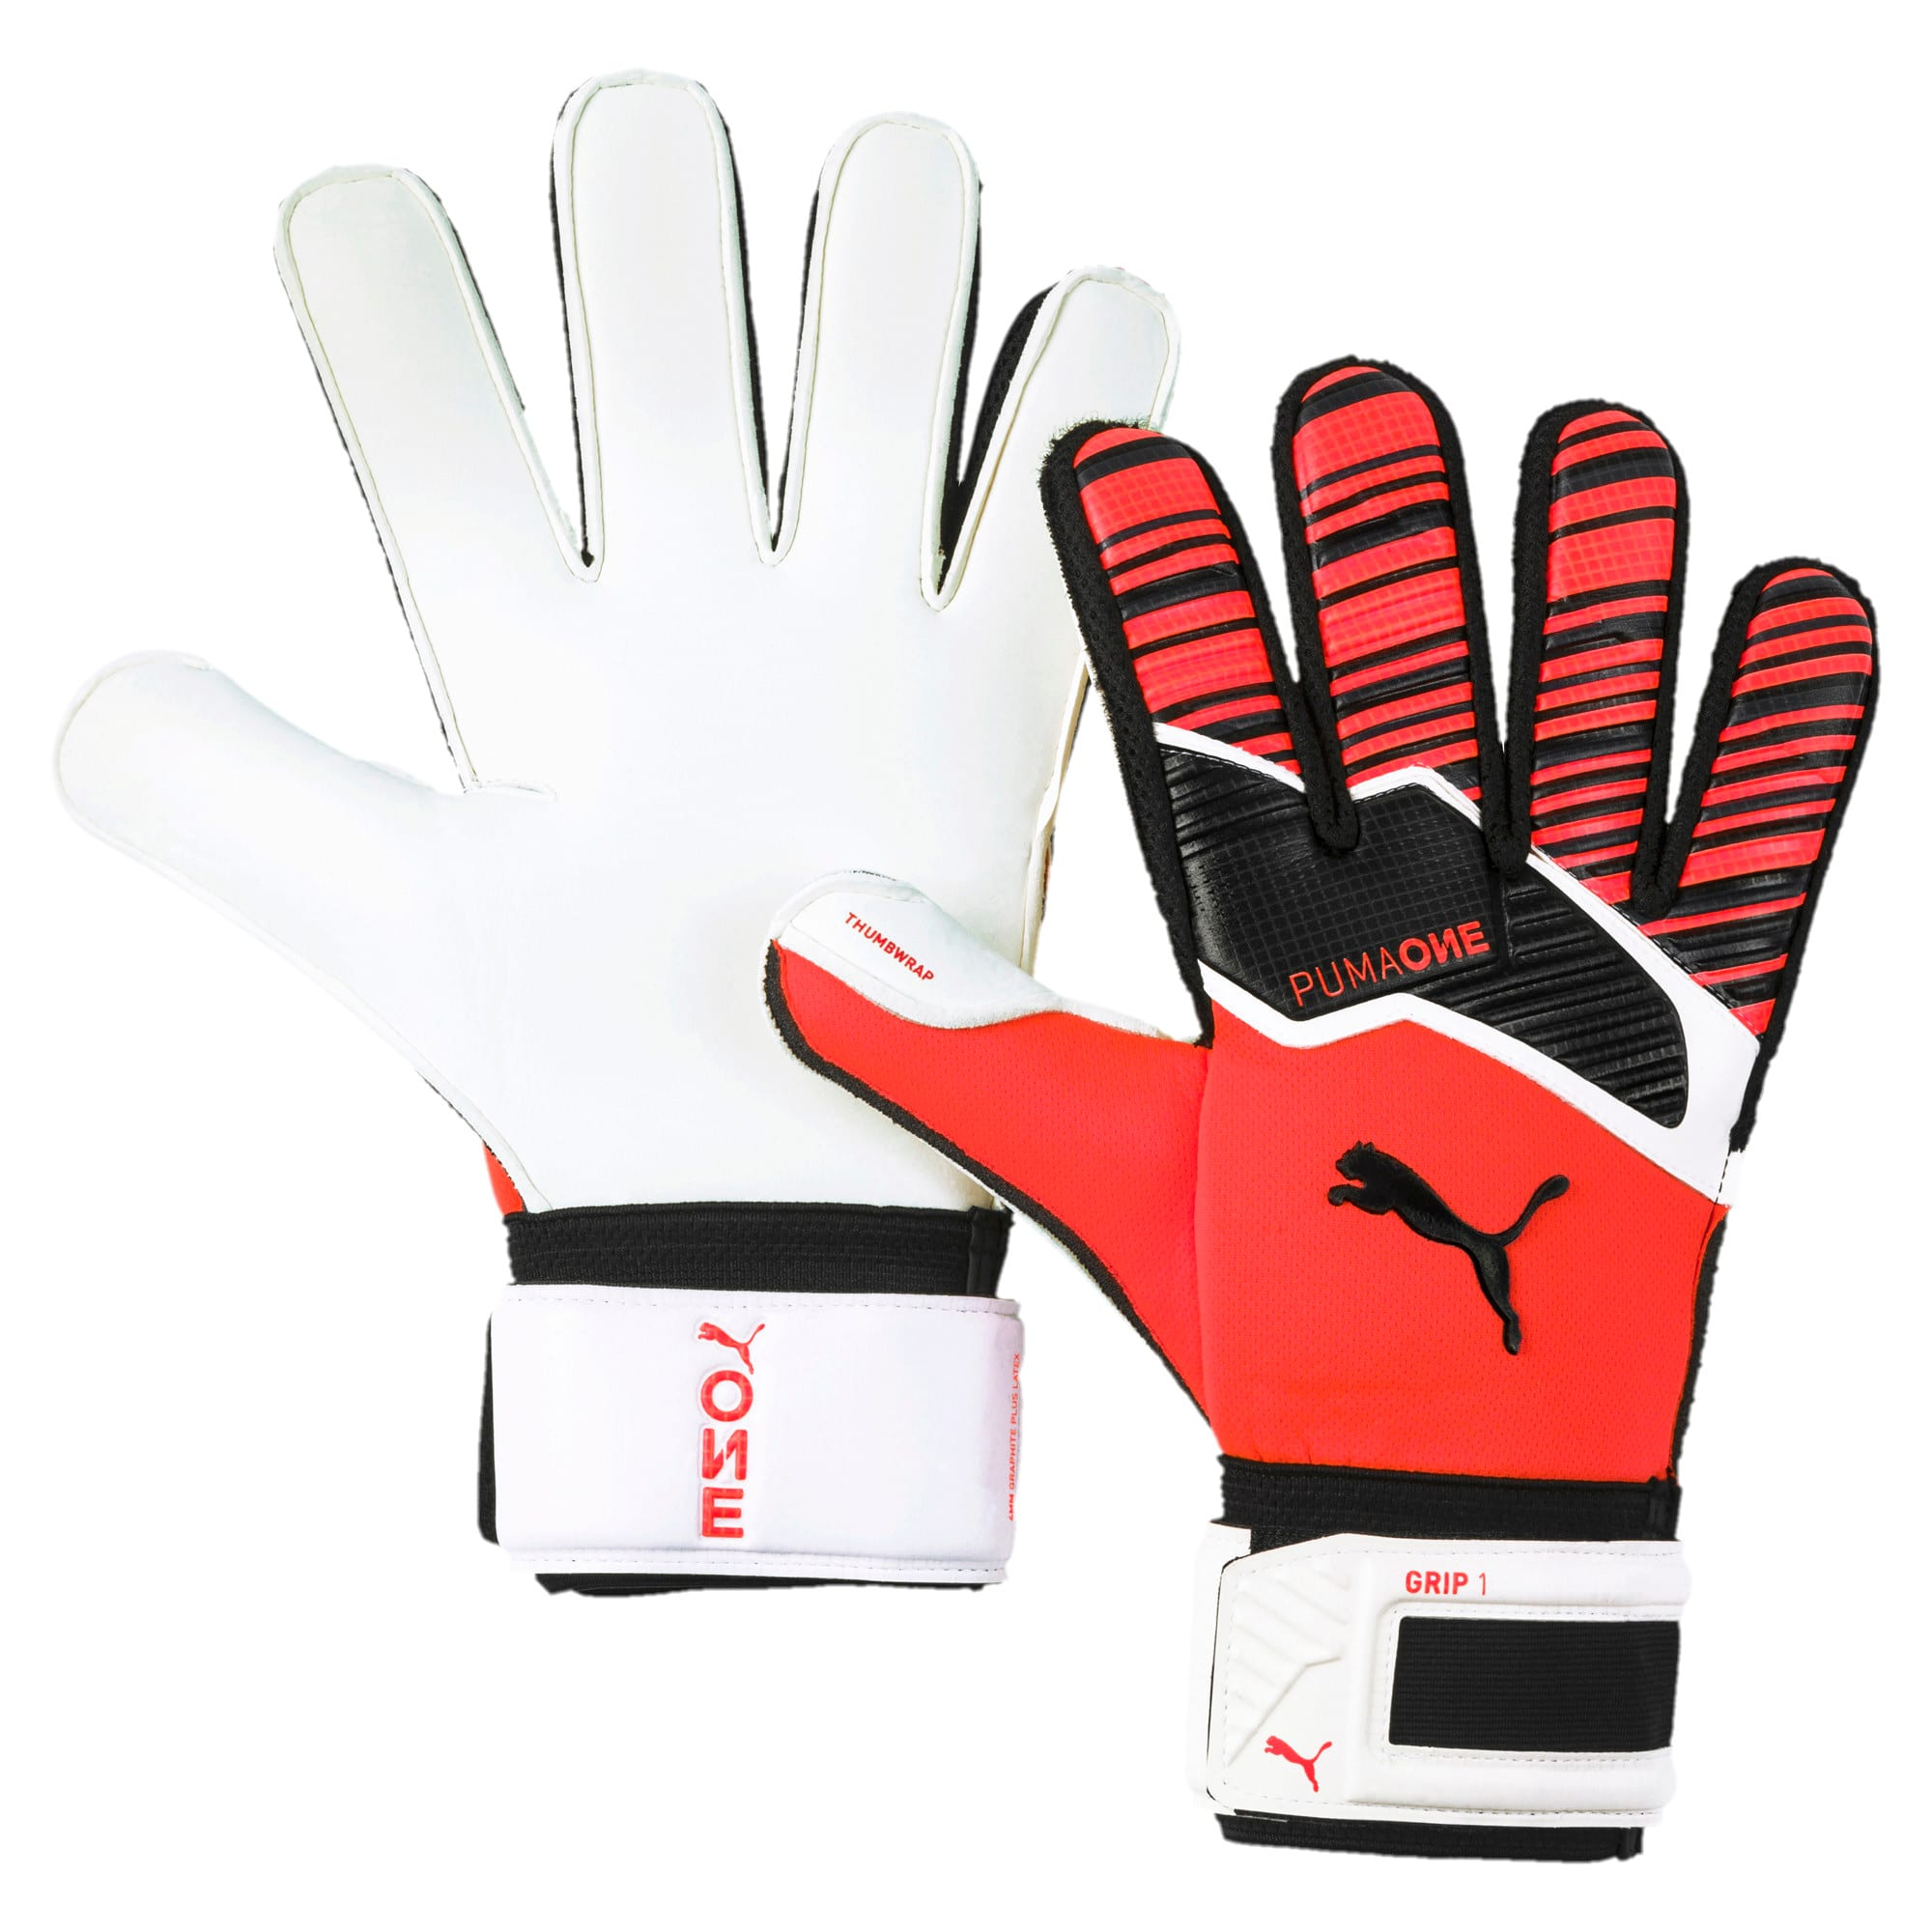 Thumbnail 1 of PUMA One Grip 1 RC Football Goalkeeper Gloves, Nrgy Red-Black-Puma White, medium